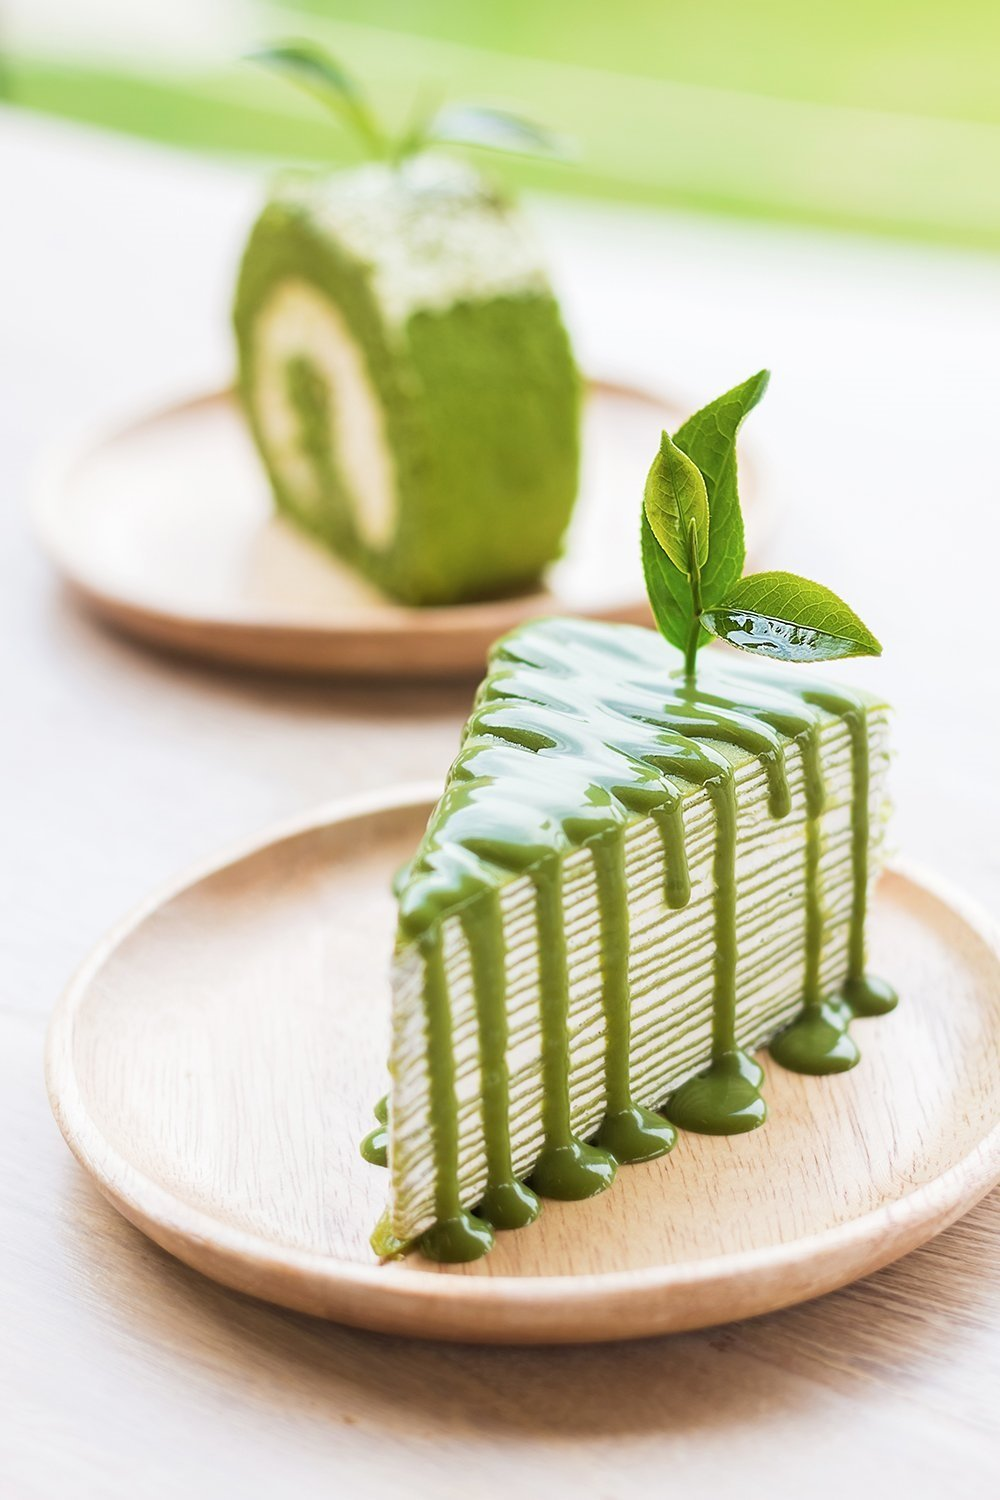 https://www.laboutiquedeschefs.com/upload/images/gateu-de-crepes-au-the-vert-matcha.jpg